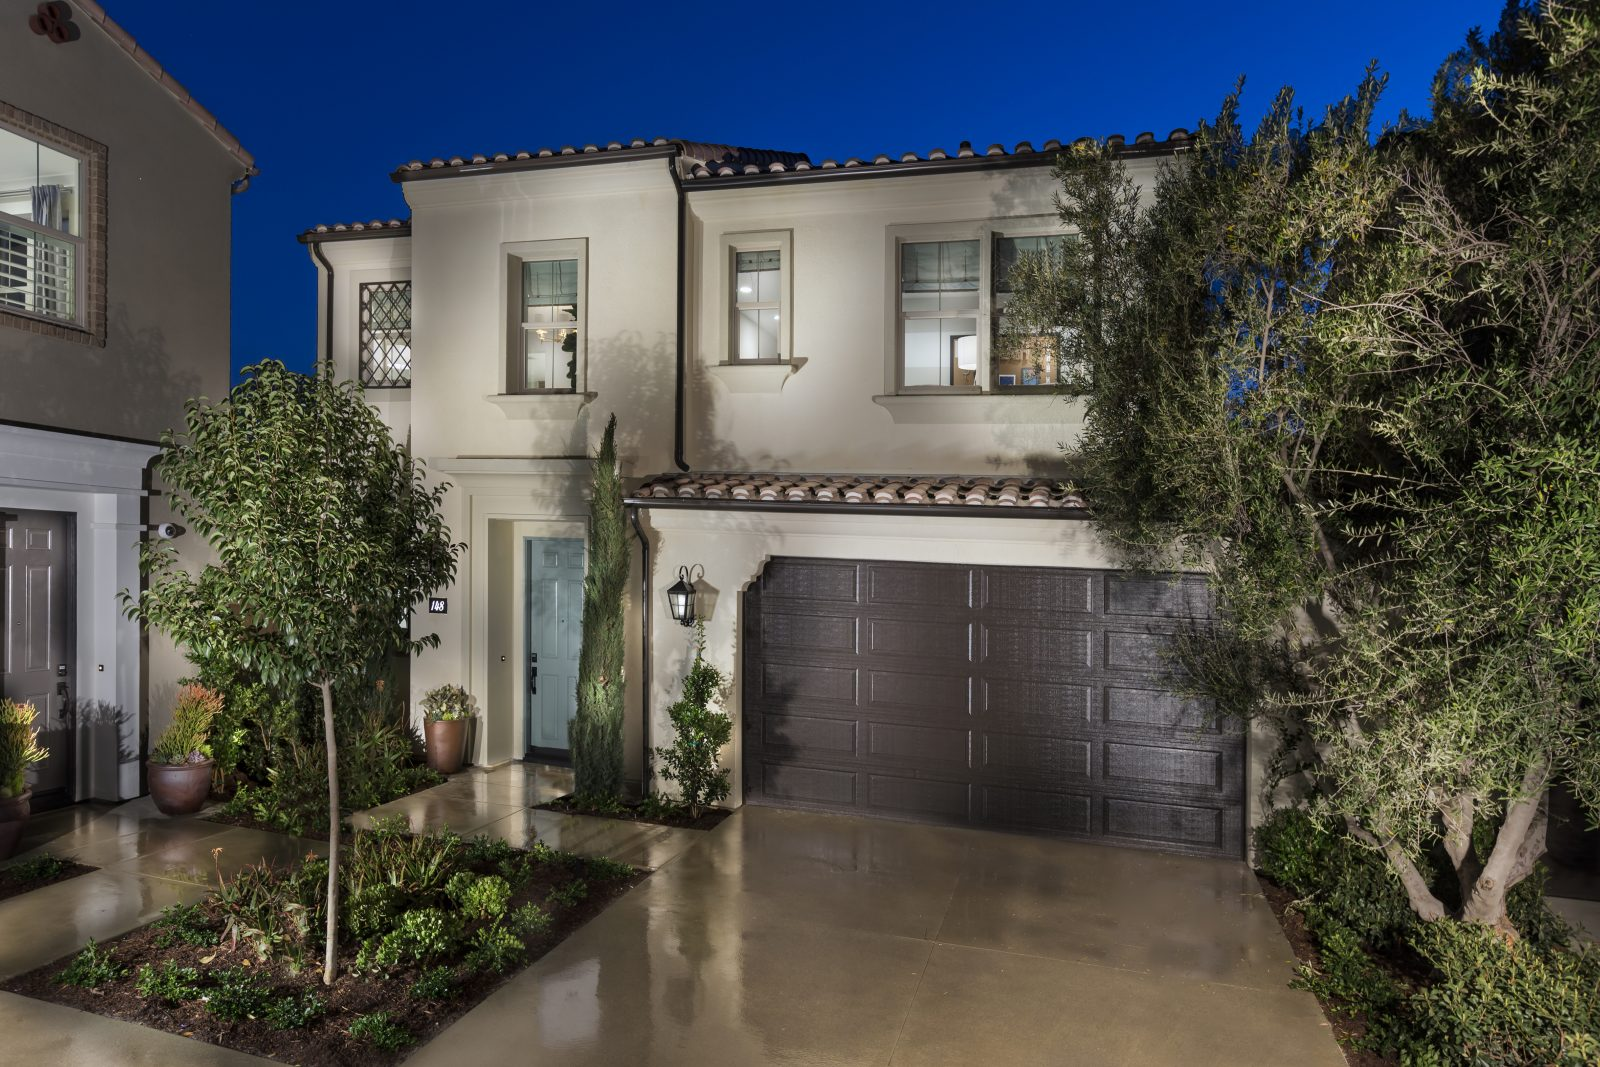 Orange County New Home for Sale - Legado at Portola Springs